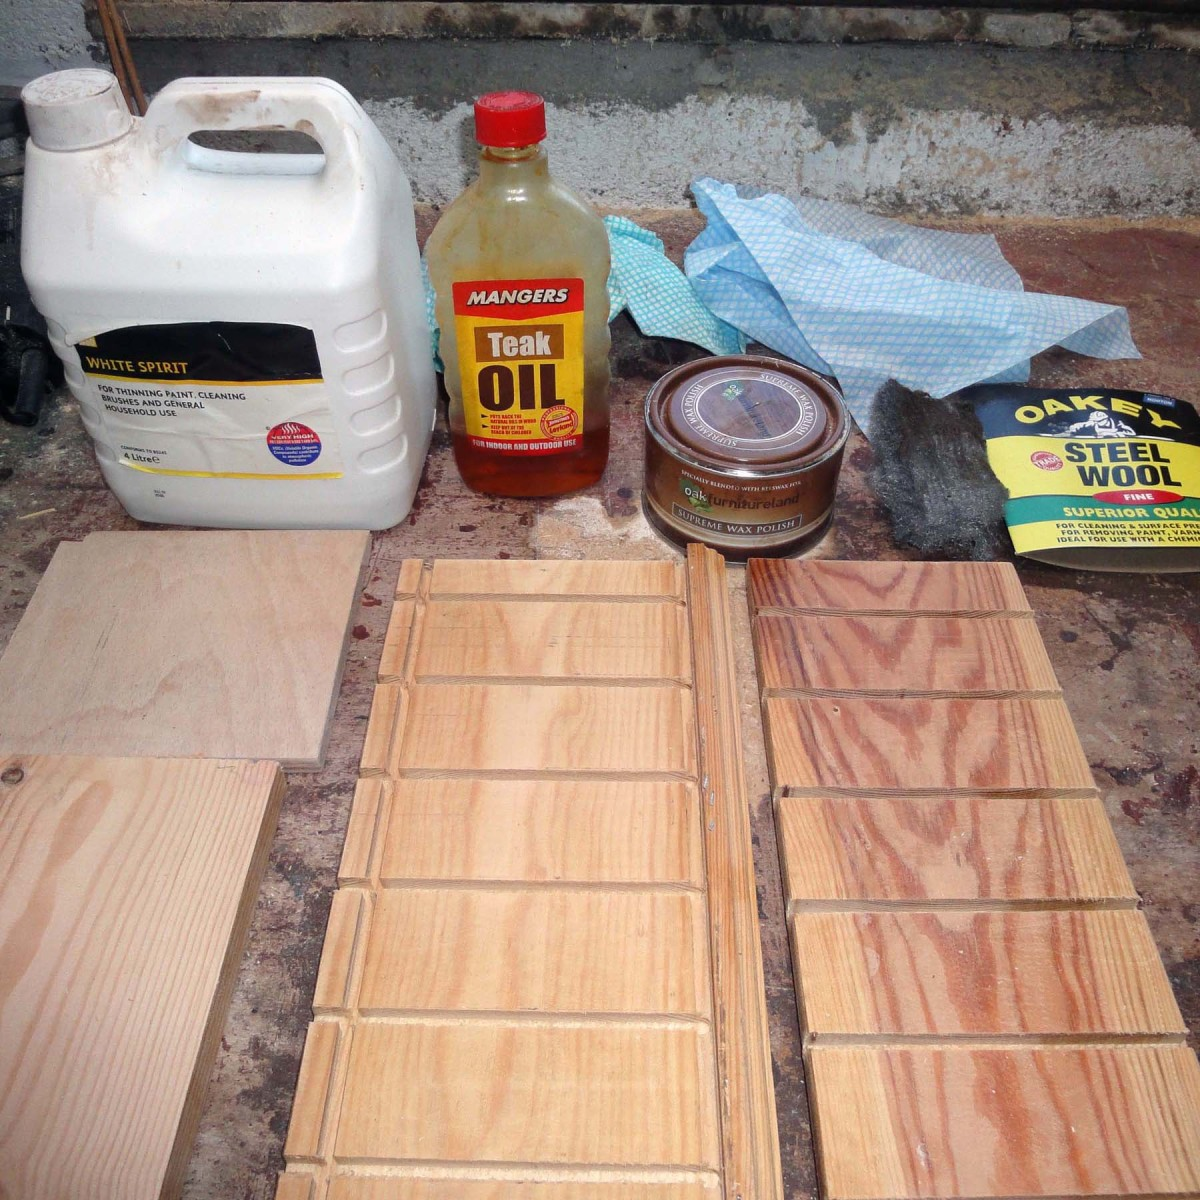 White spirit, Teak Oil and Beeswax for final clean and polish